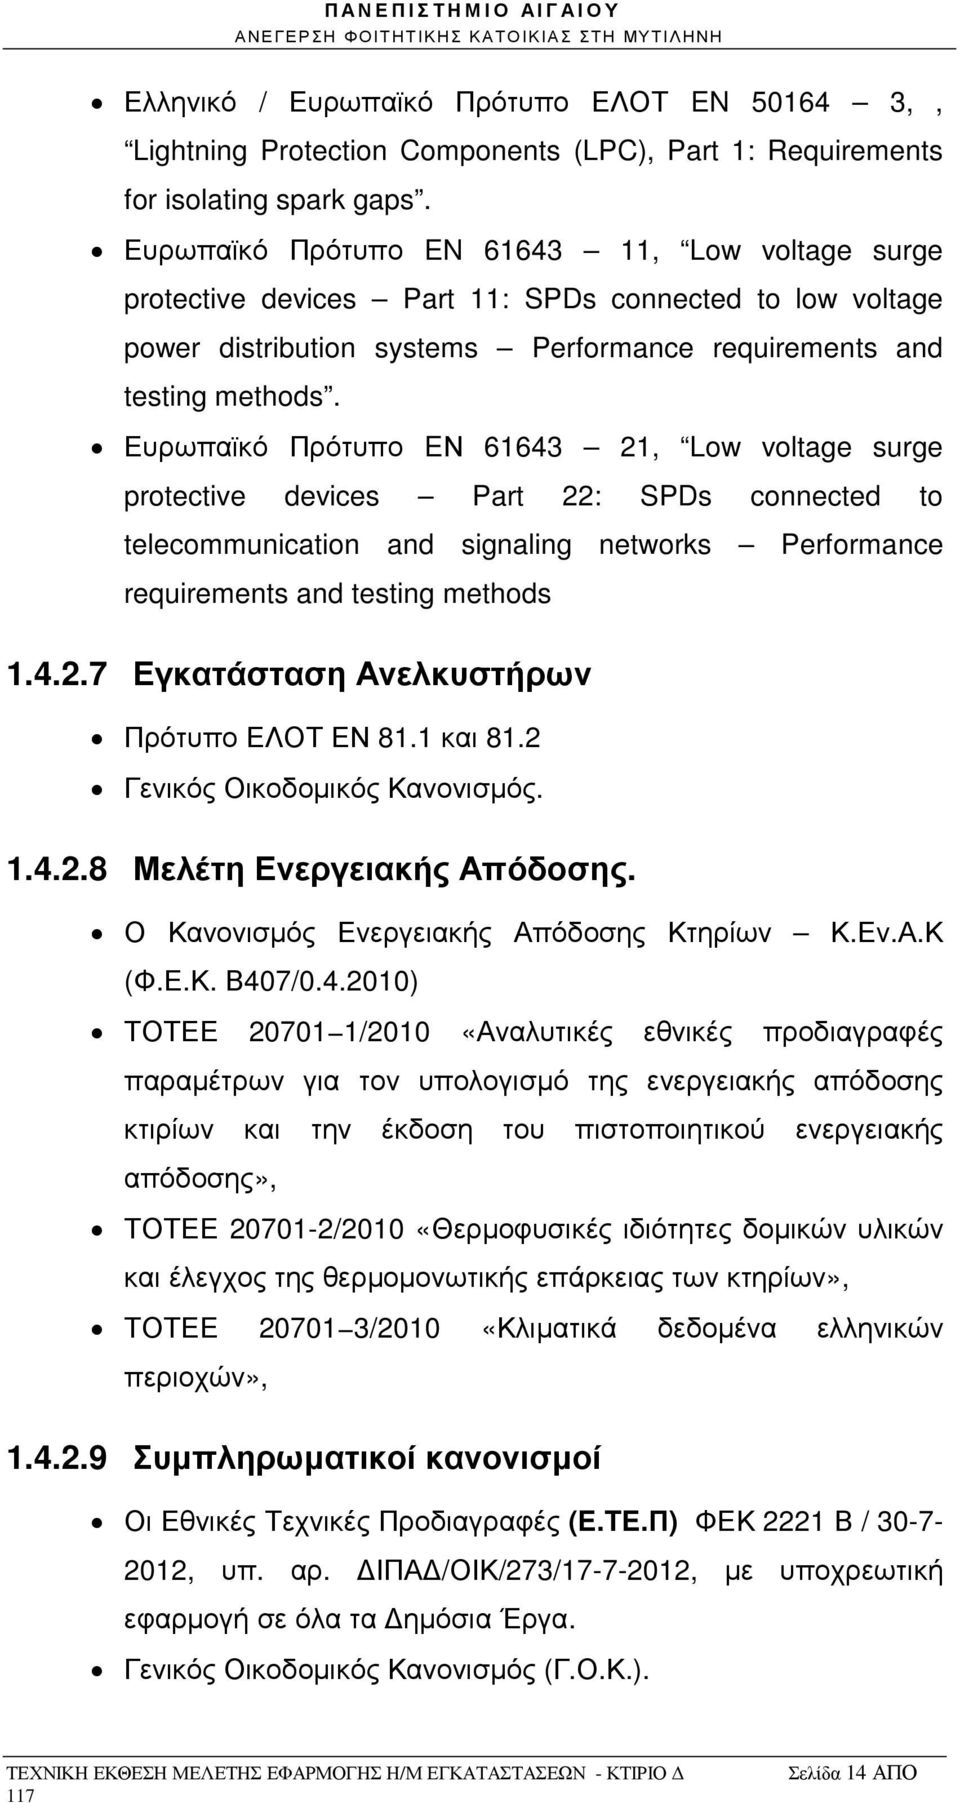 Ευρωπαϊκό Πρότυπο EΝ 61643 21, Low voltage surge protective devices Part 22: SPDs connected to telecommunication and signaling networks Performance requirements and testing methods 1.4.2.7 Εγκατάσταση Ανελκυστήρων Πρότυπο ΕΛΟΤ ΕΝ 81.